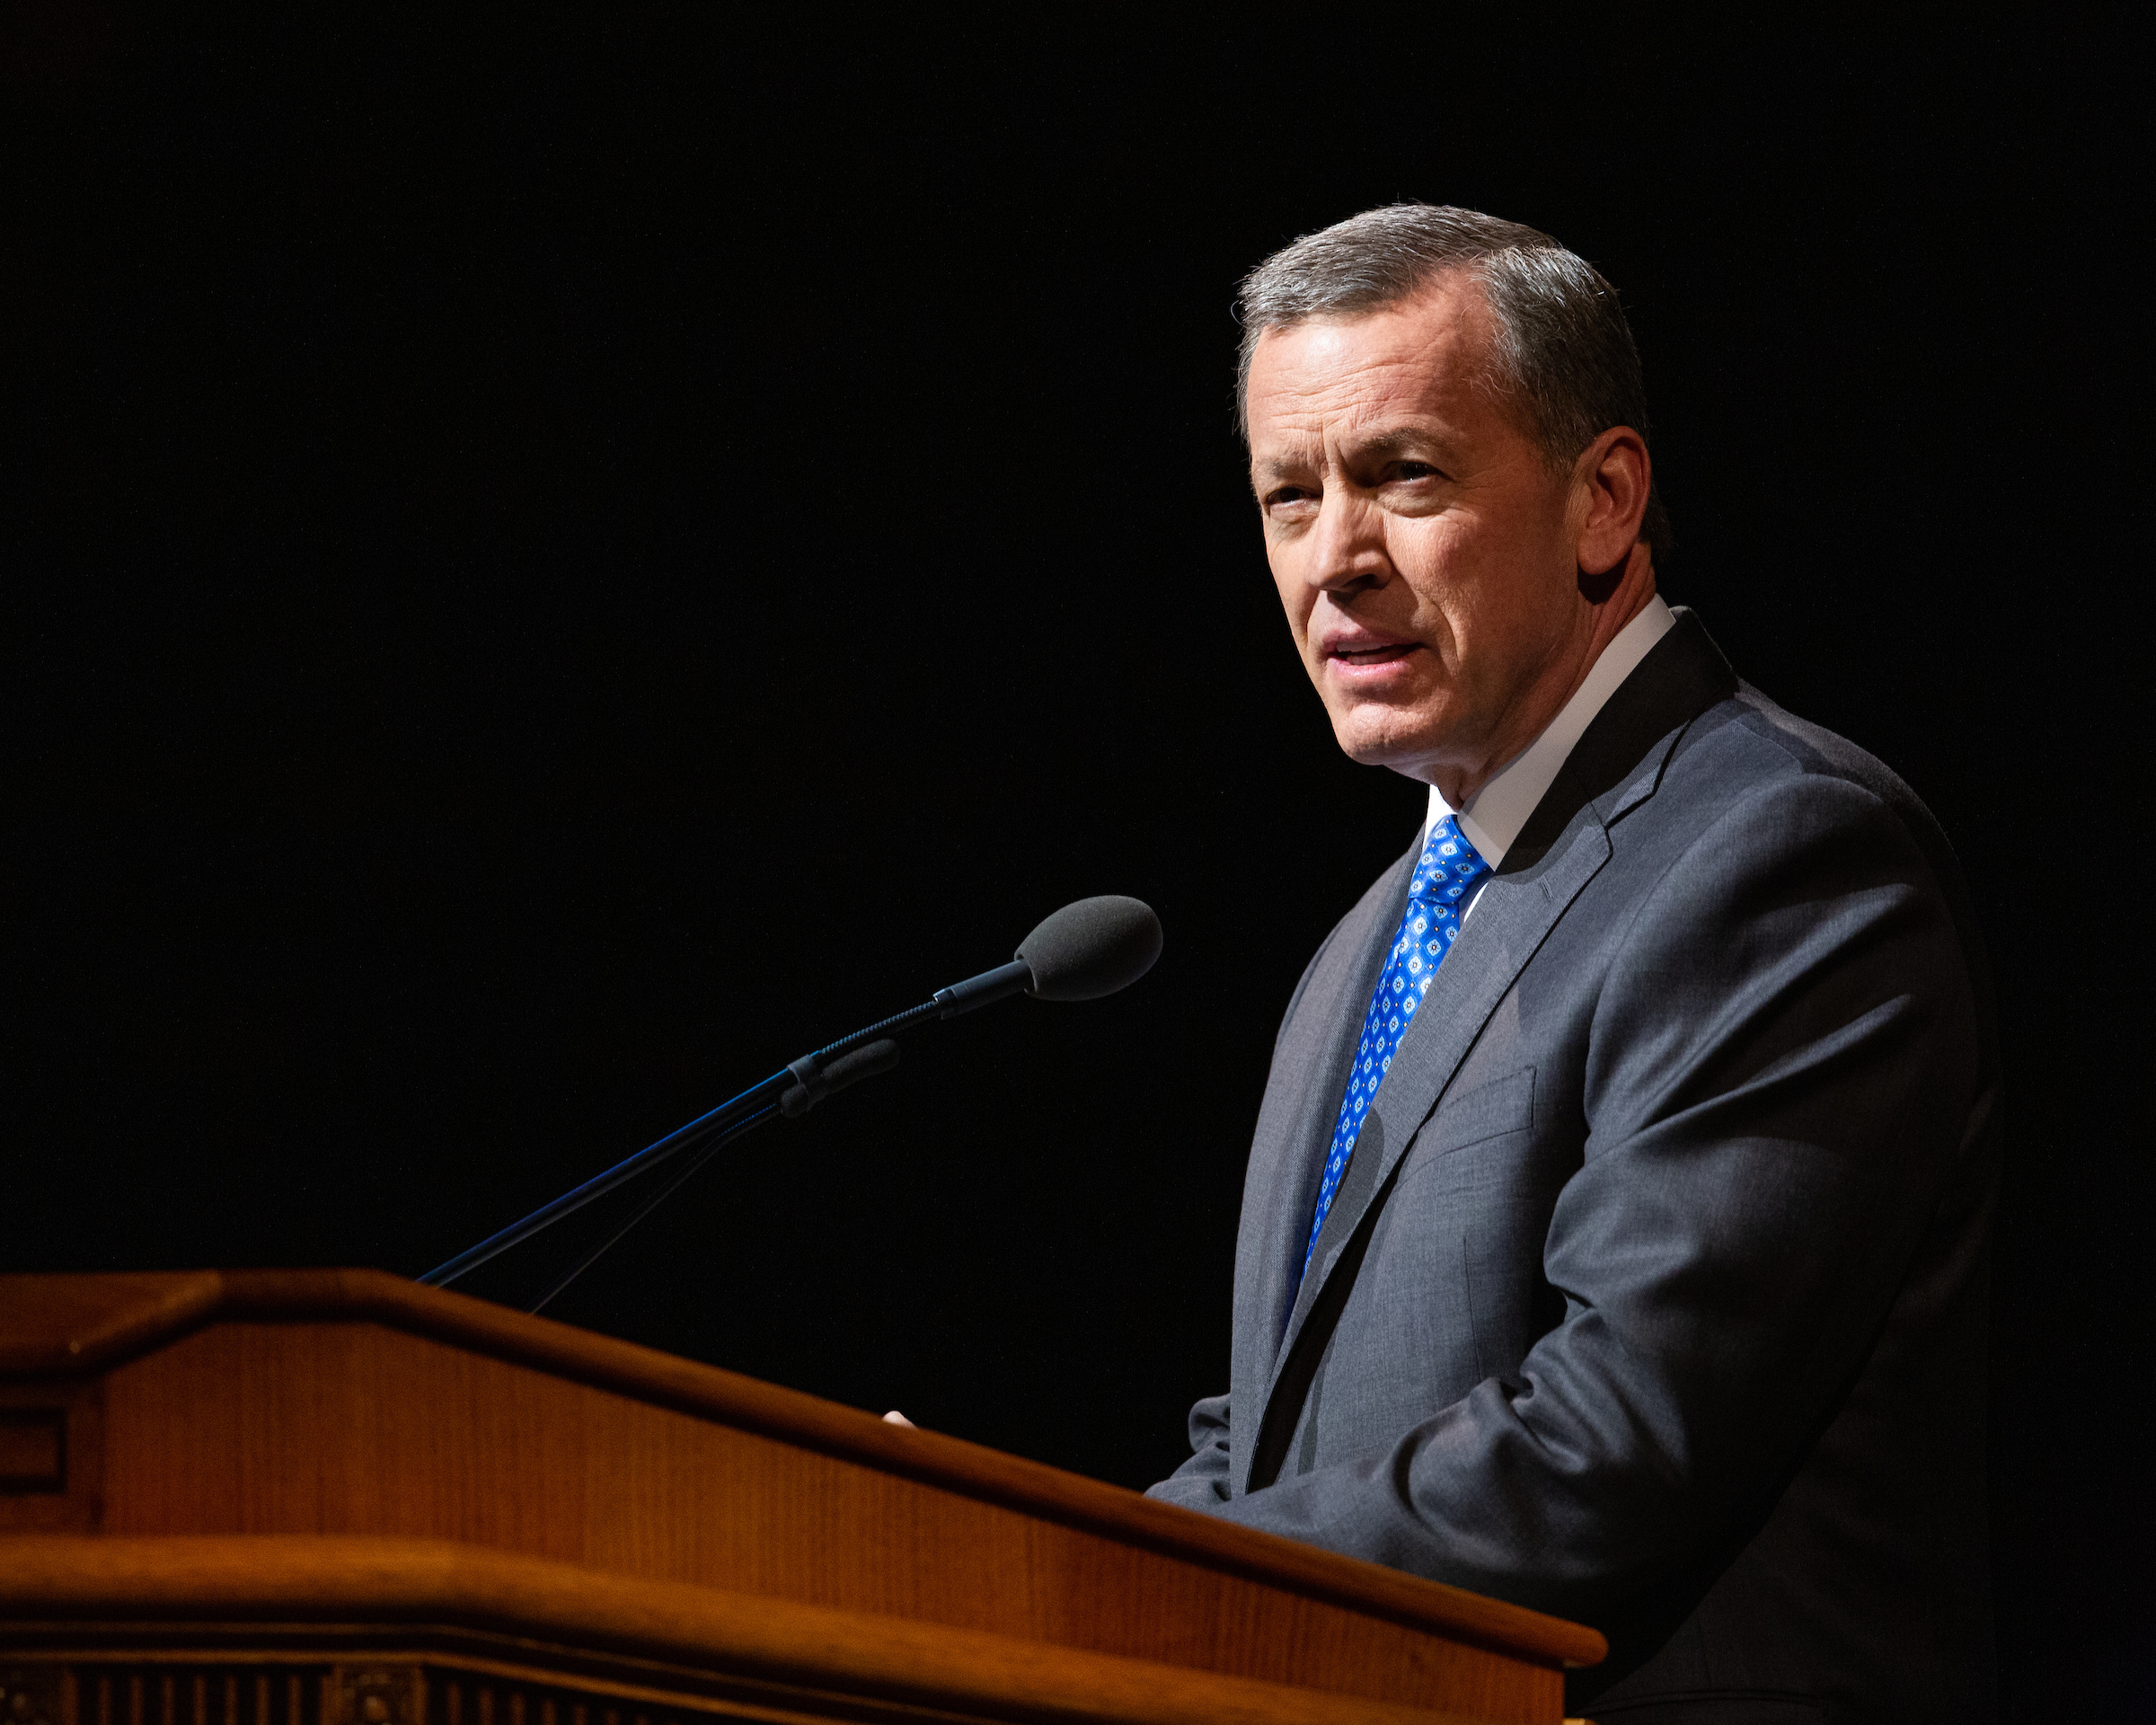 Elder Randall K. Bennett speaks during a campus devotional at Brigham Young University on March 19, 2019.